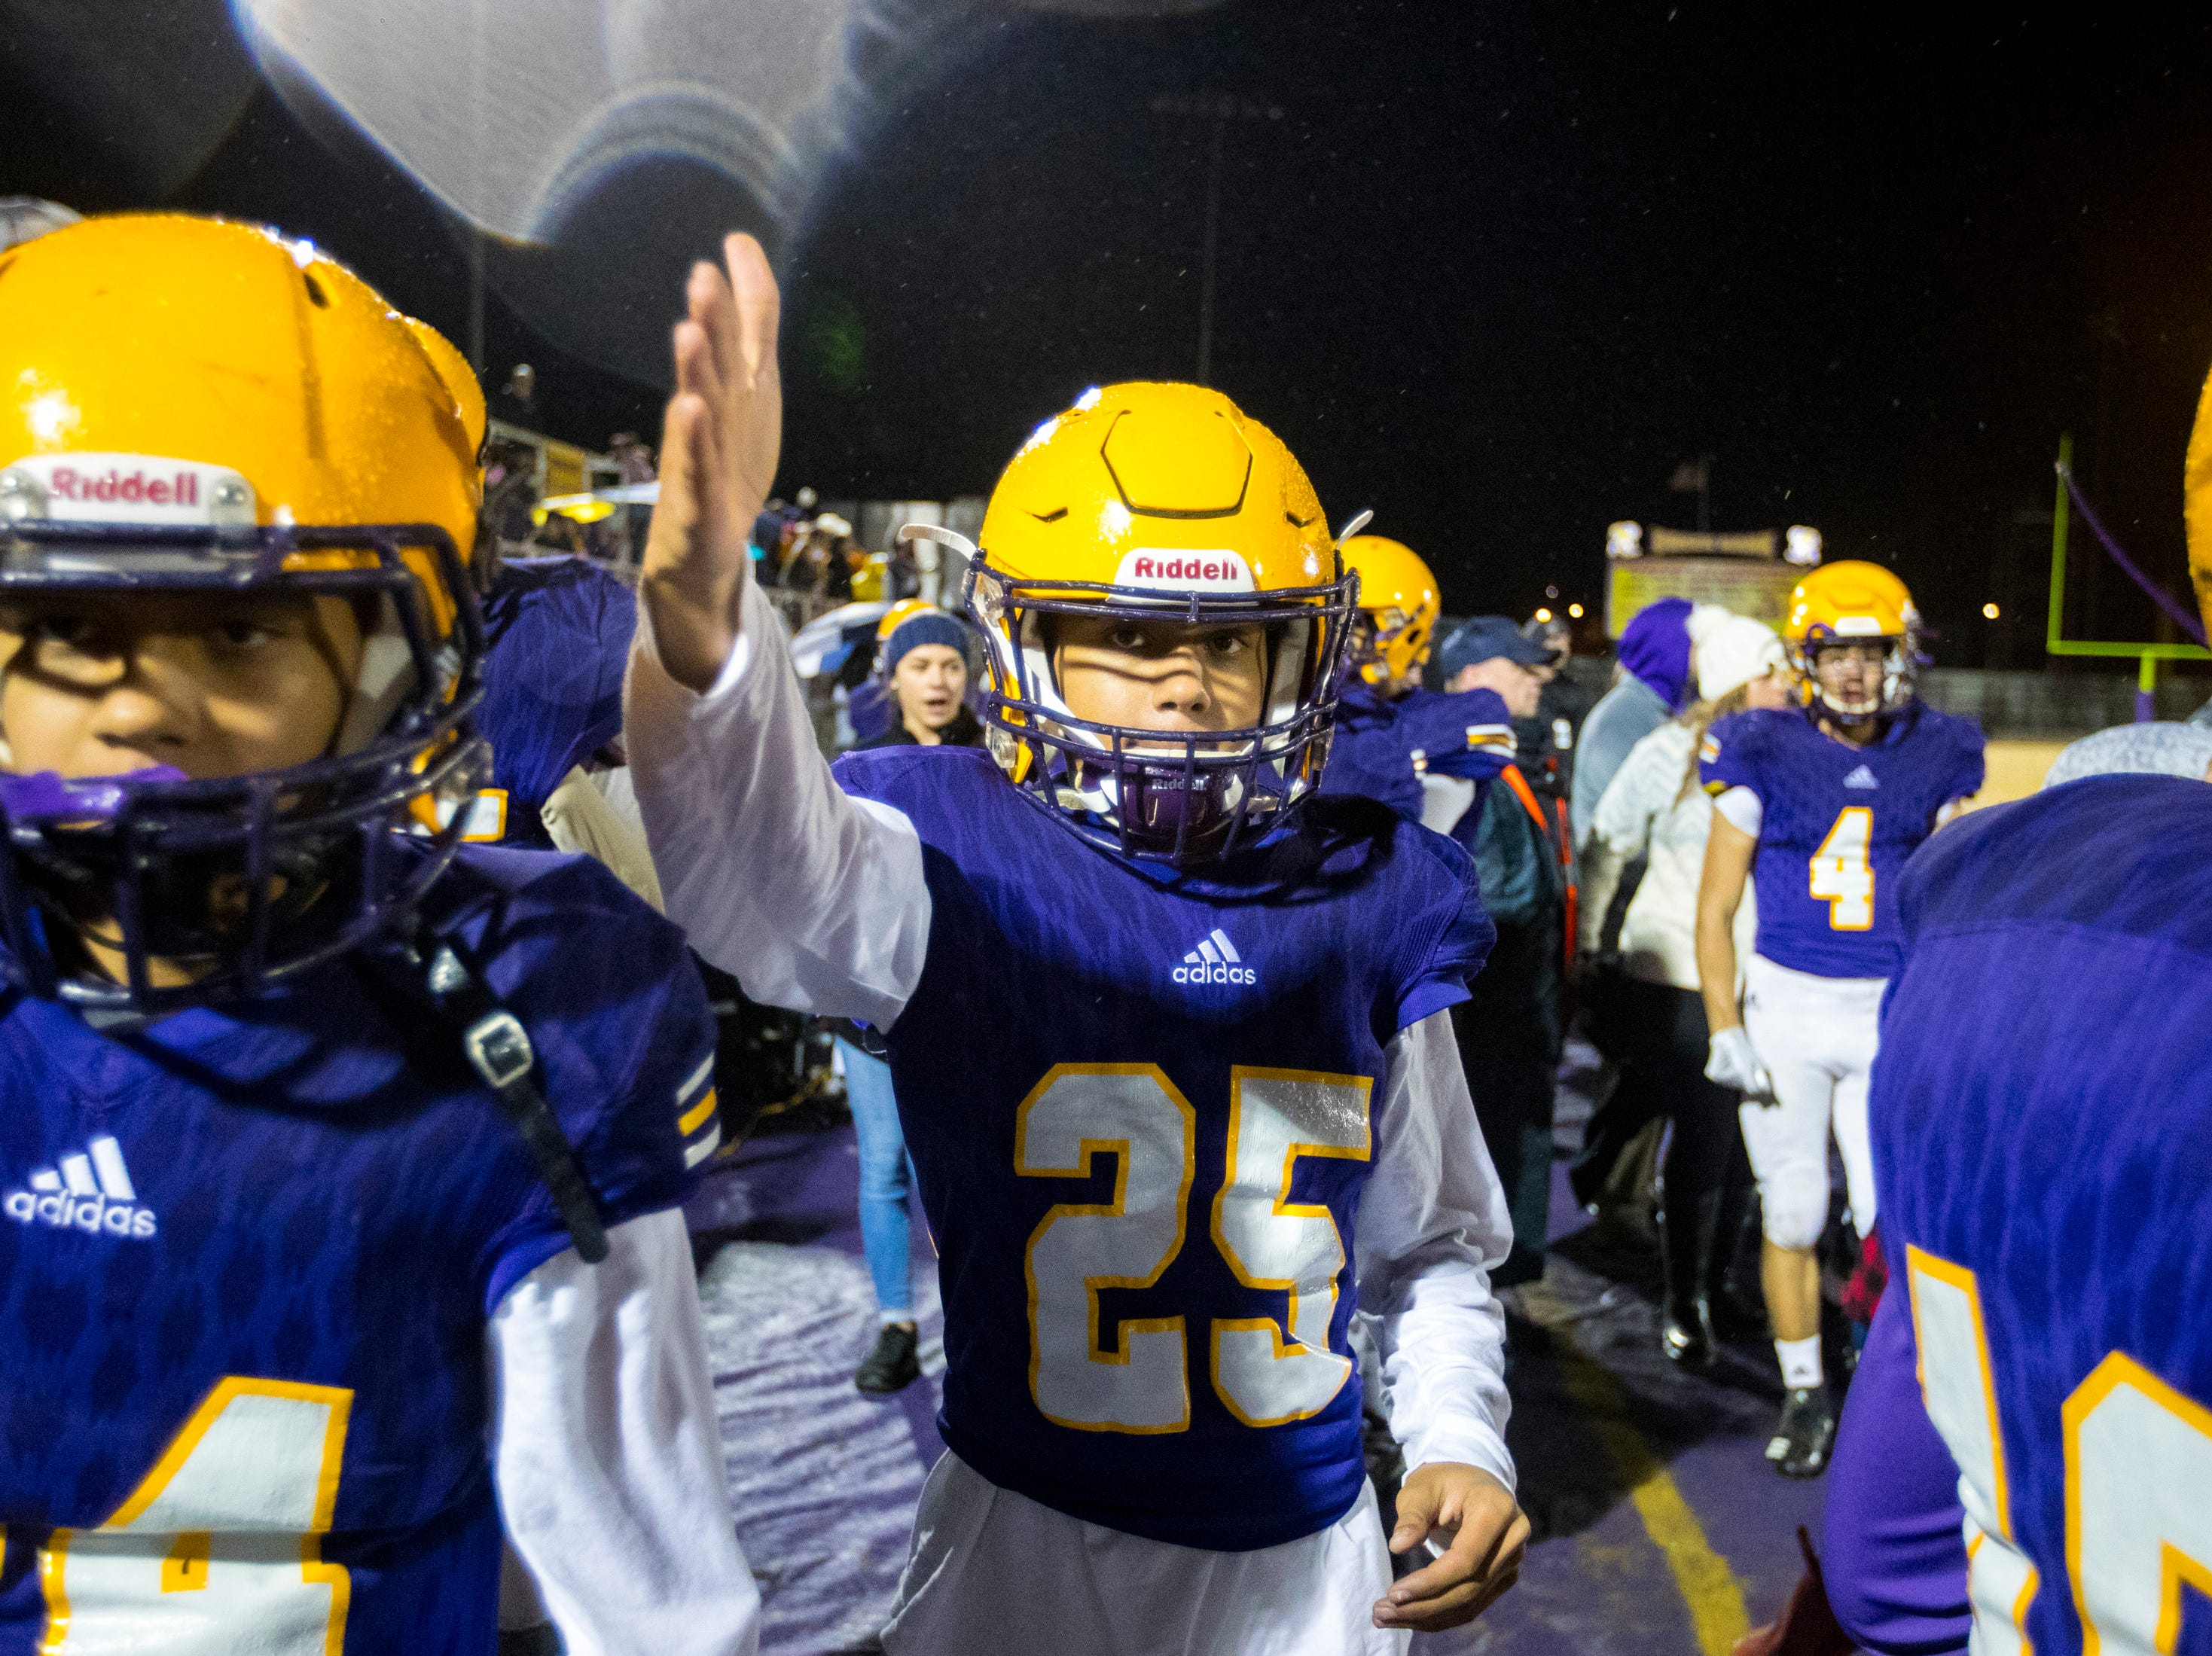 Trousdale County's Kane Burnley (25) motions for a first down during Trousdale County's game against Meigs County at Jim Satterfield Stadium in Hartsville on Friday, Nov. 23, 2018.